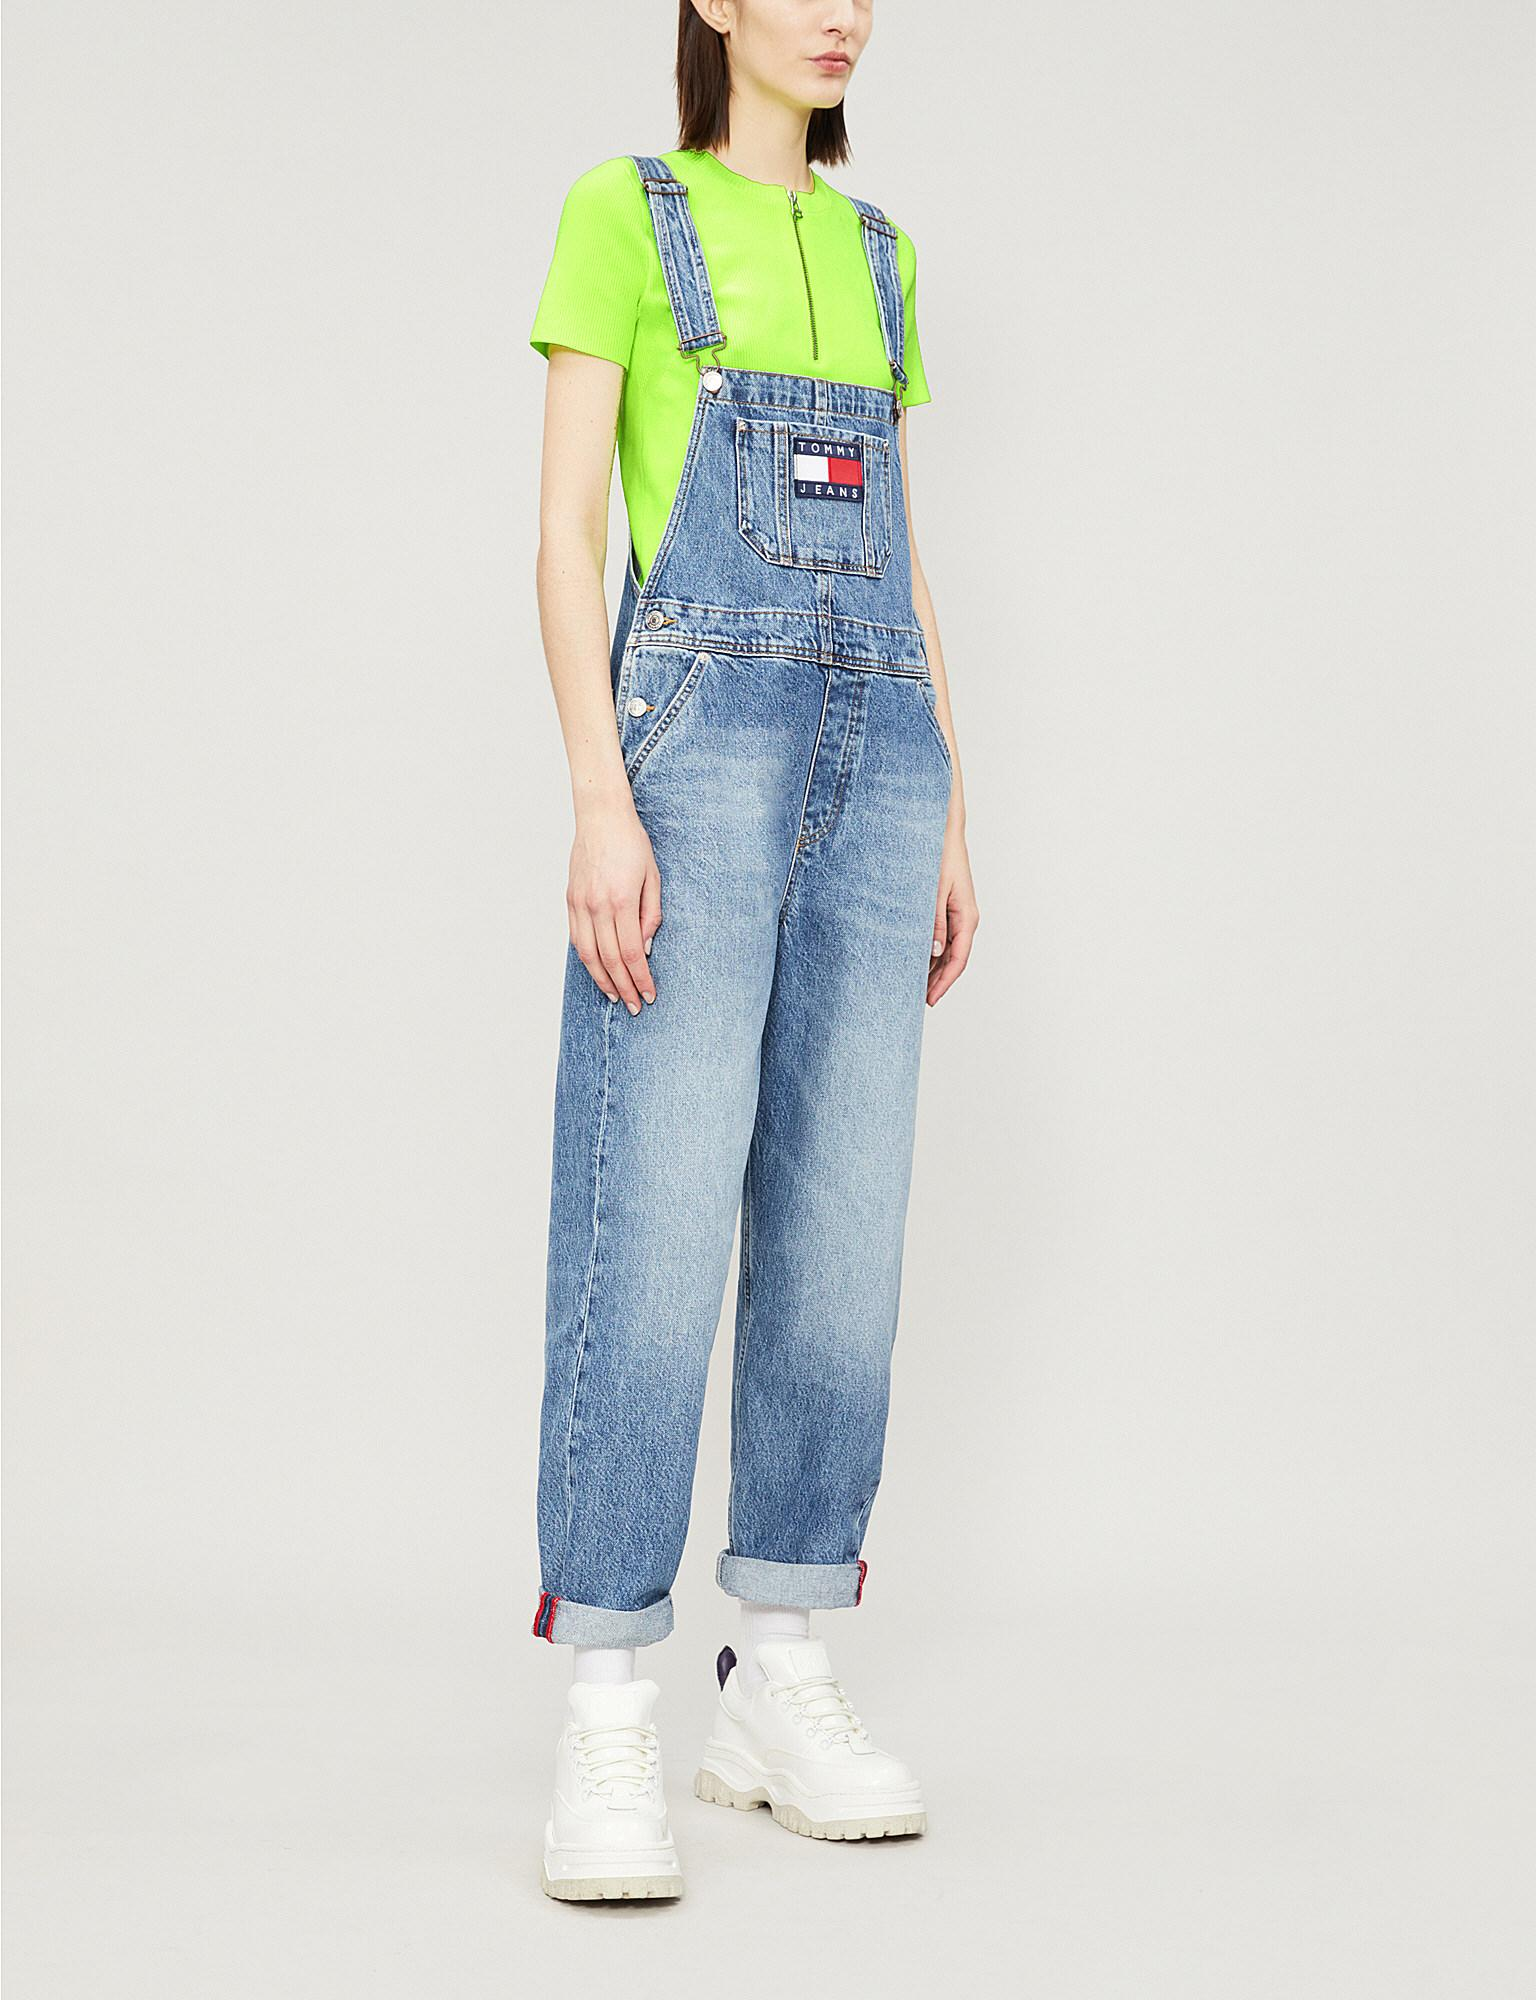 6628144abf8b Lyst - Tommy Hilfiger Logo-appliqué Denim Dungarees in Blue